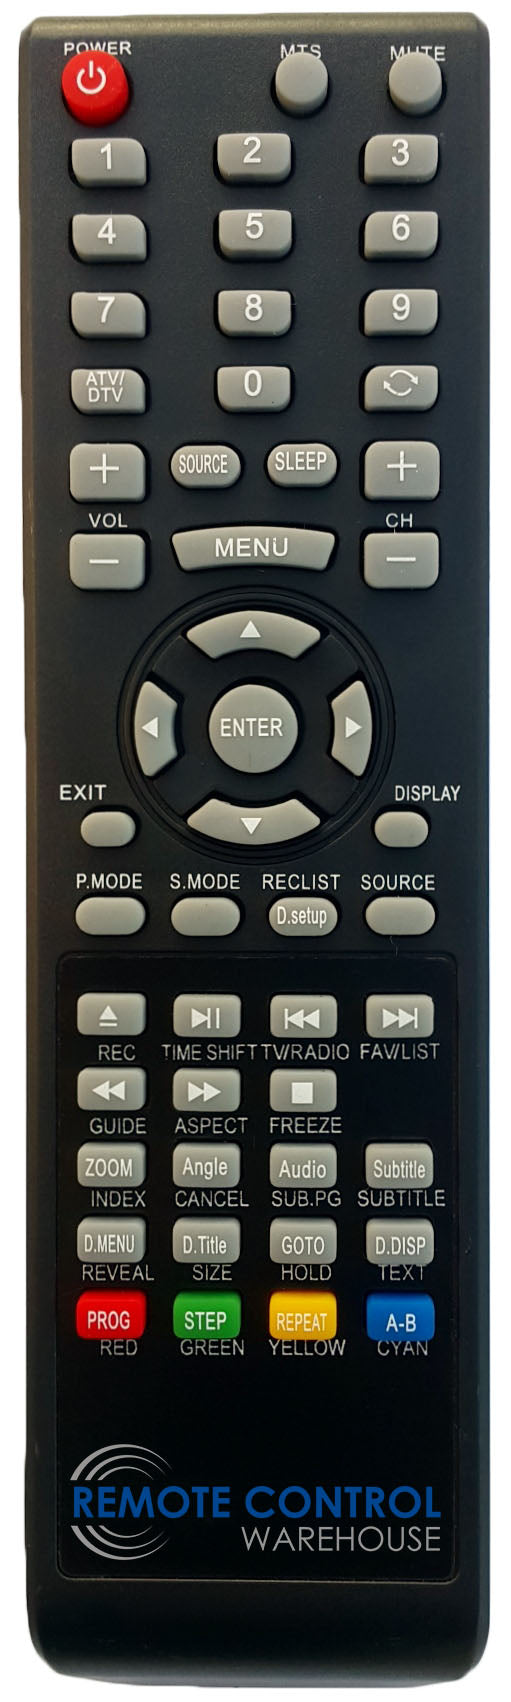 TELEFUNKEN REPLACEMENT REMOTE CONTROL - TELEFUNKEN TP26C8 LCD TV - Remote Control Warehouse